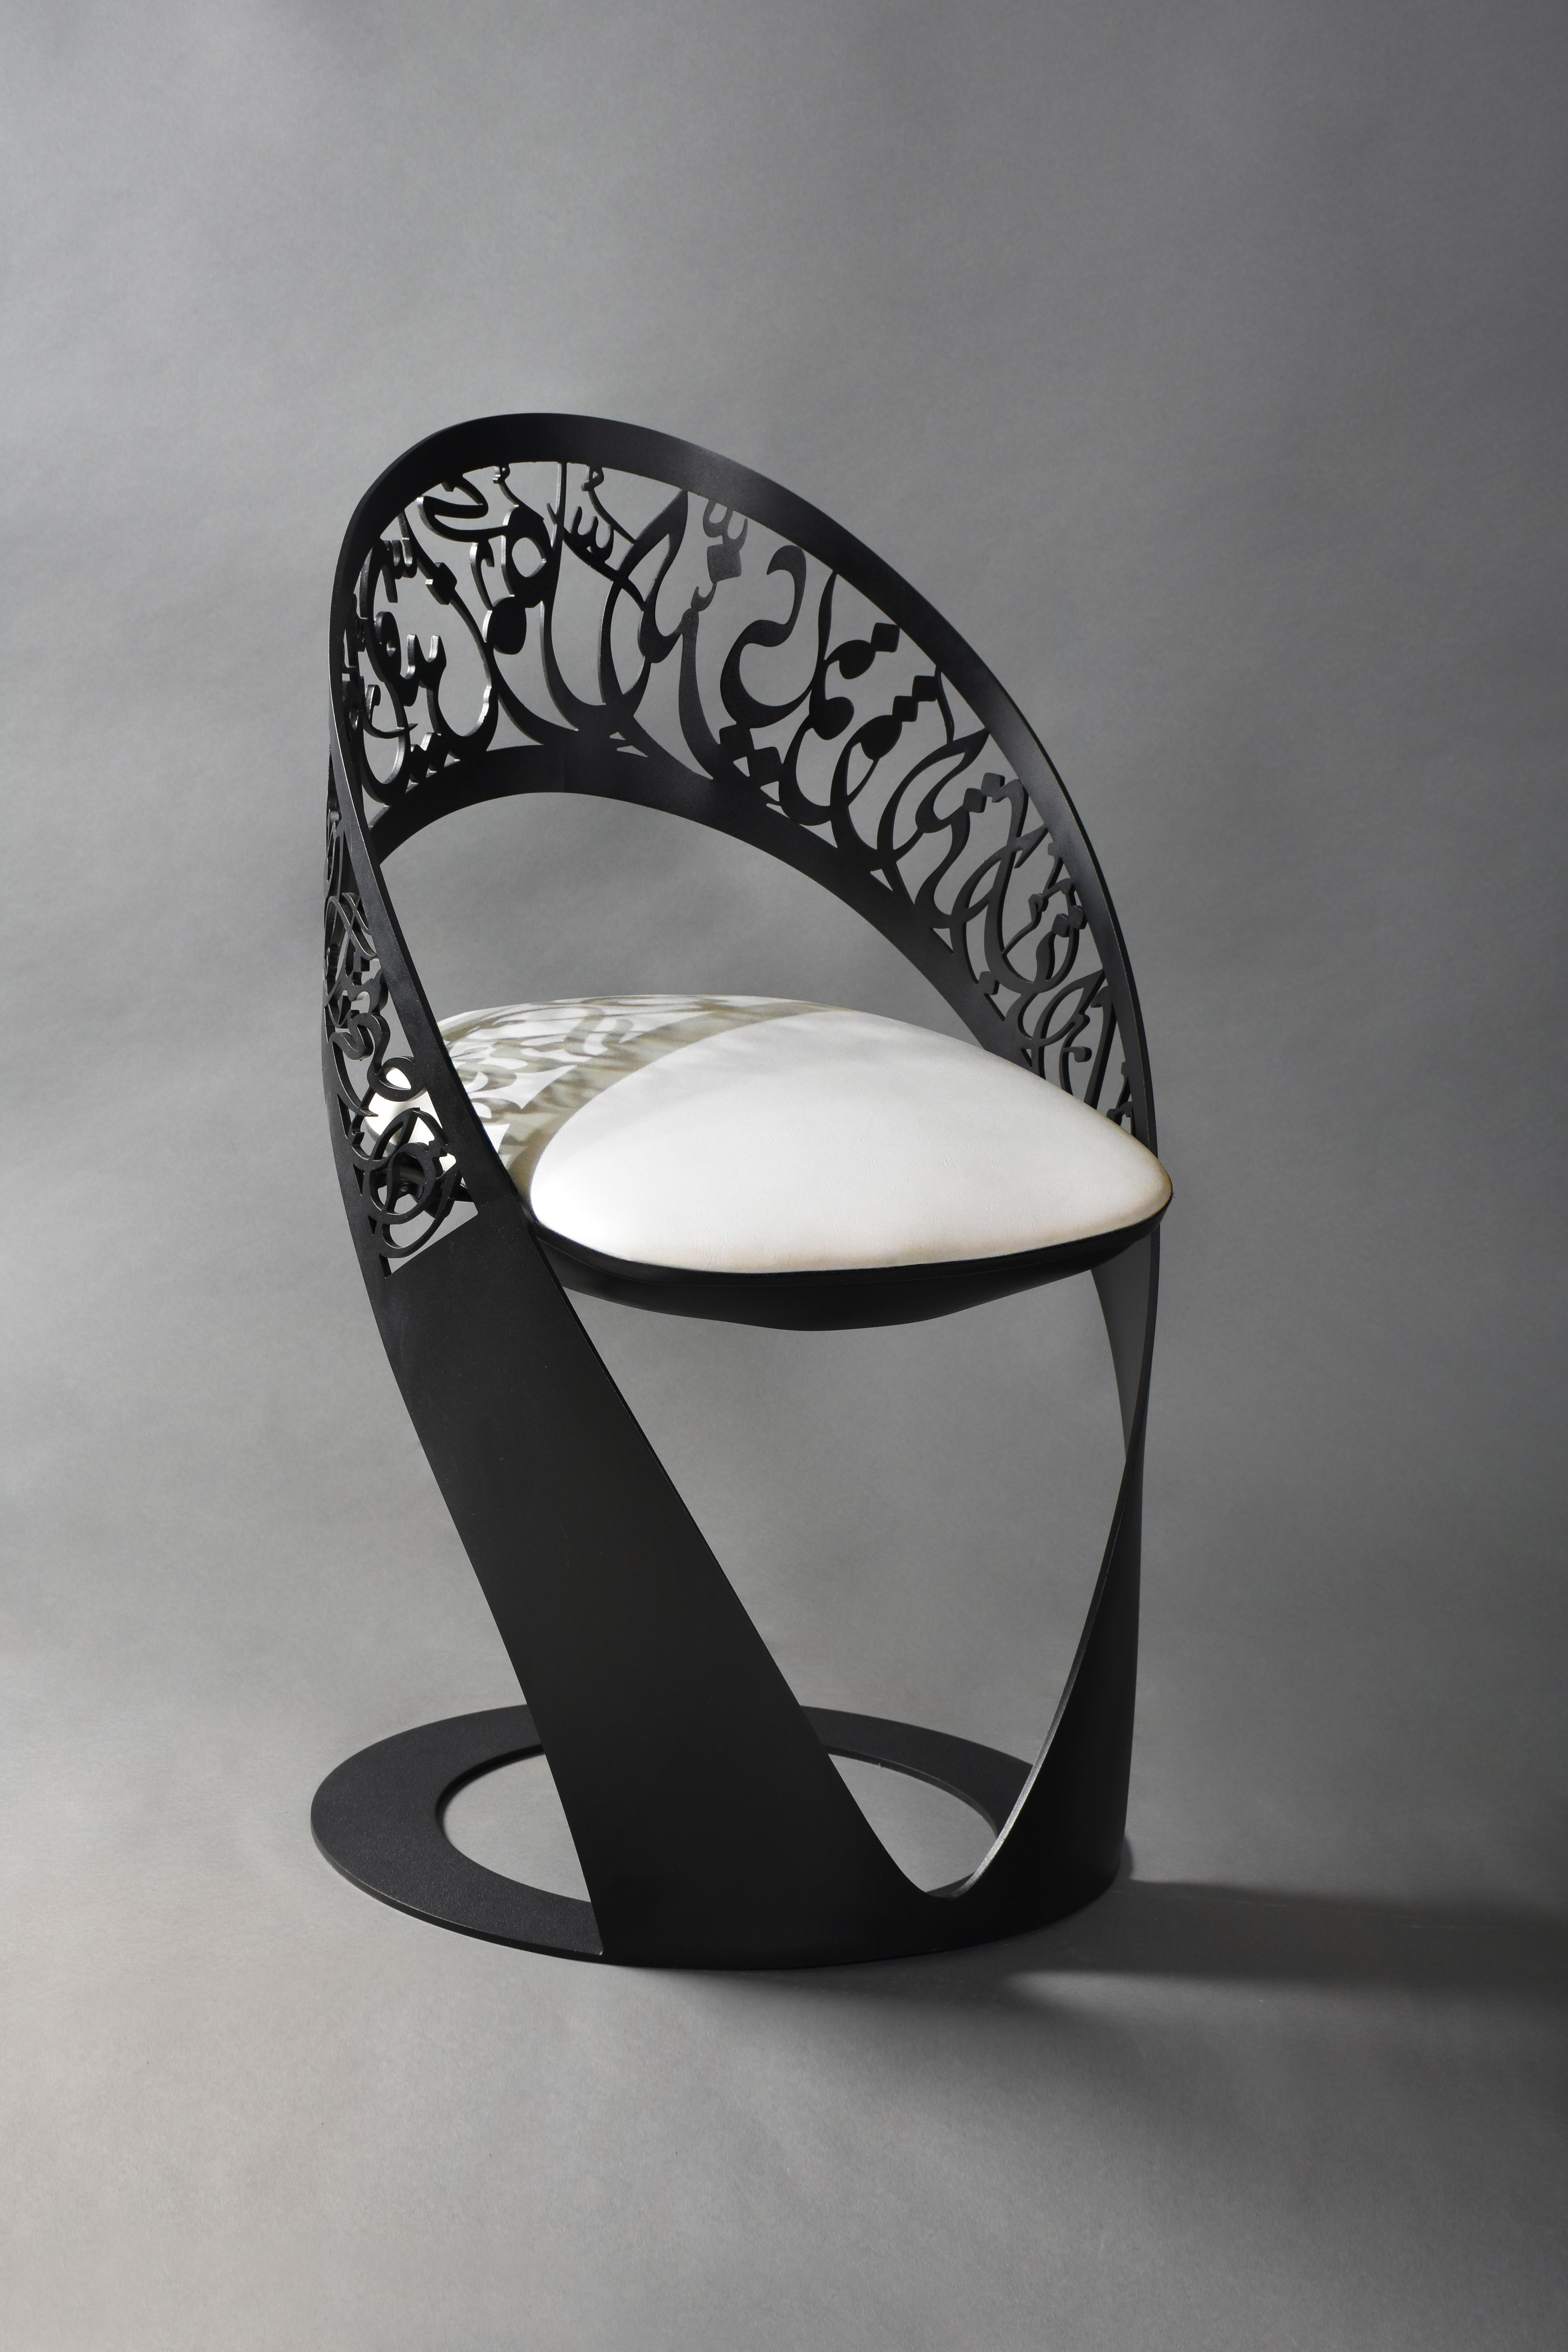 Monochrome Furniture Custom Made Arabic Calligraphy Chair From The Monochrome